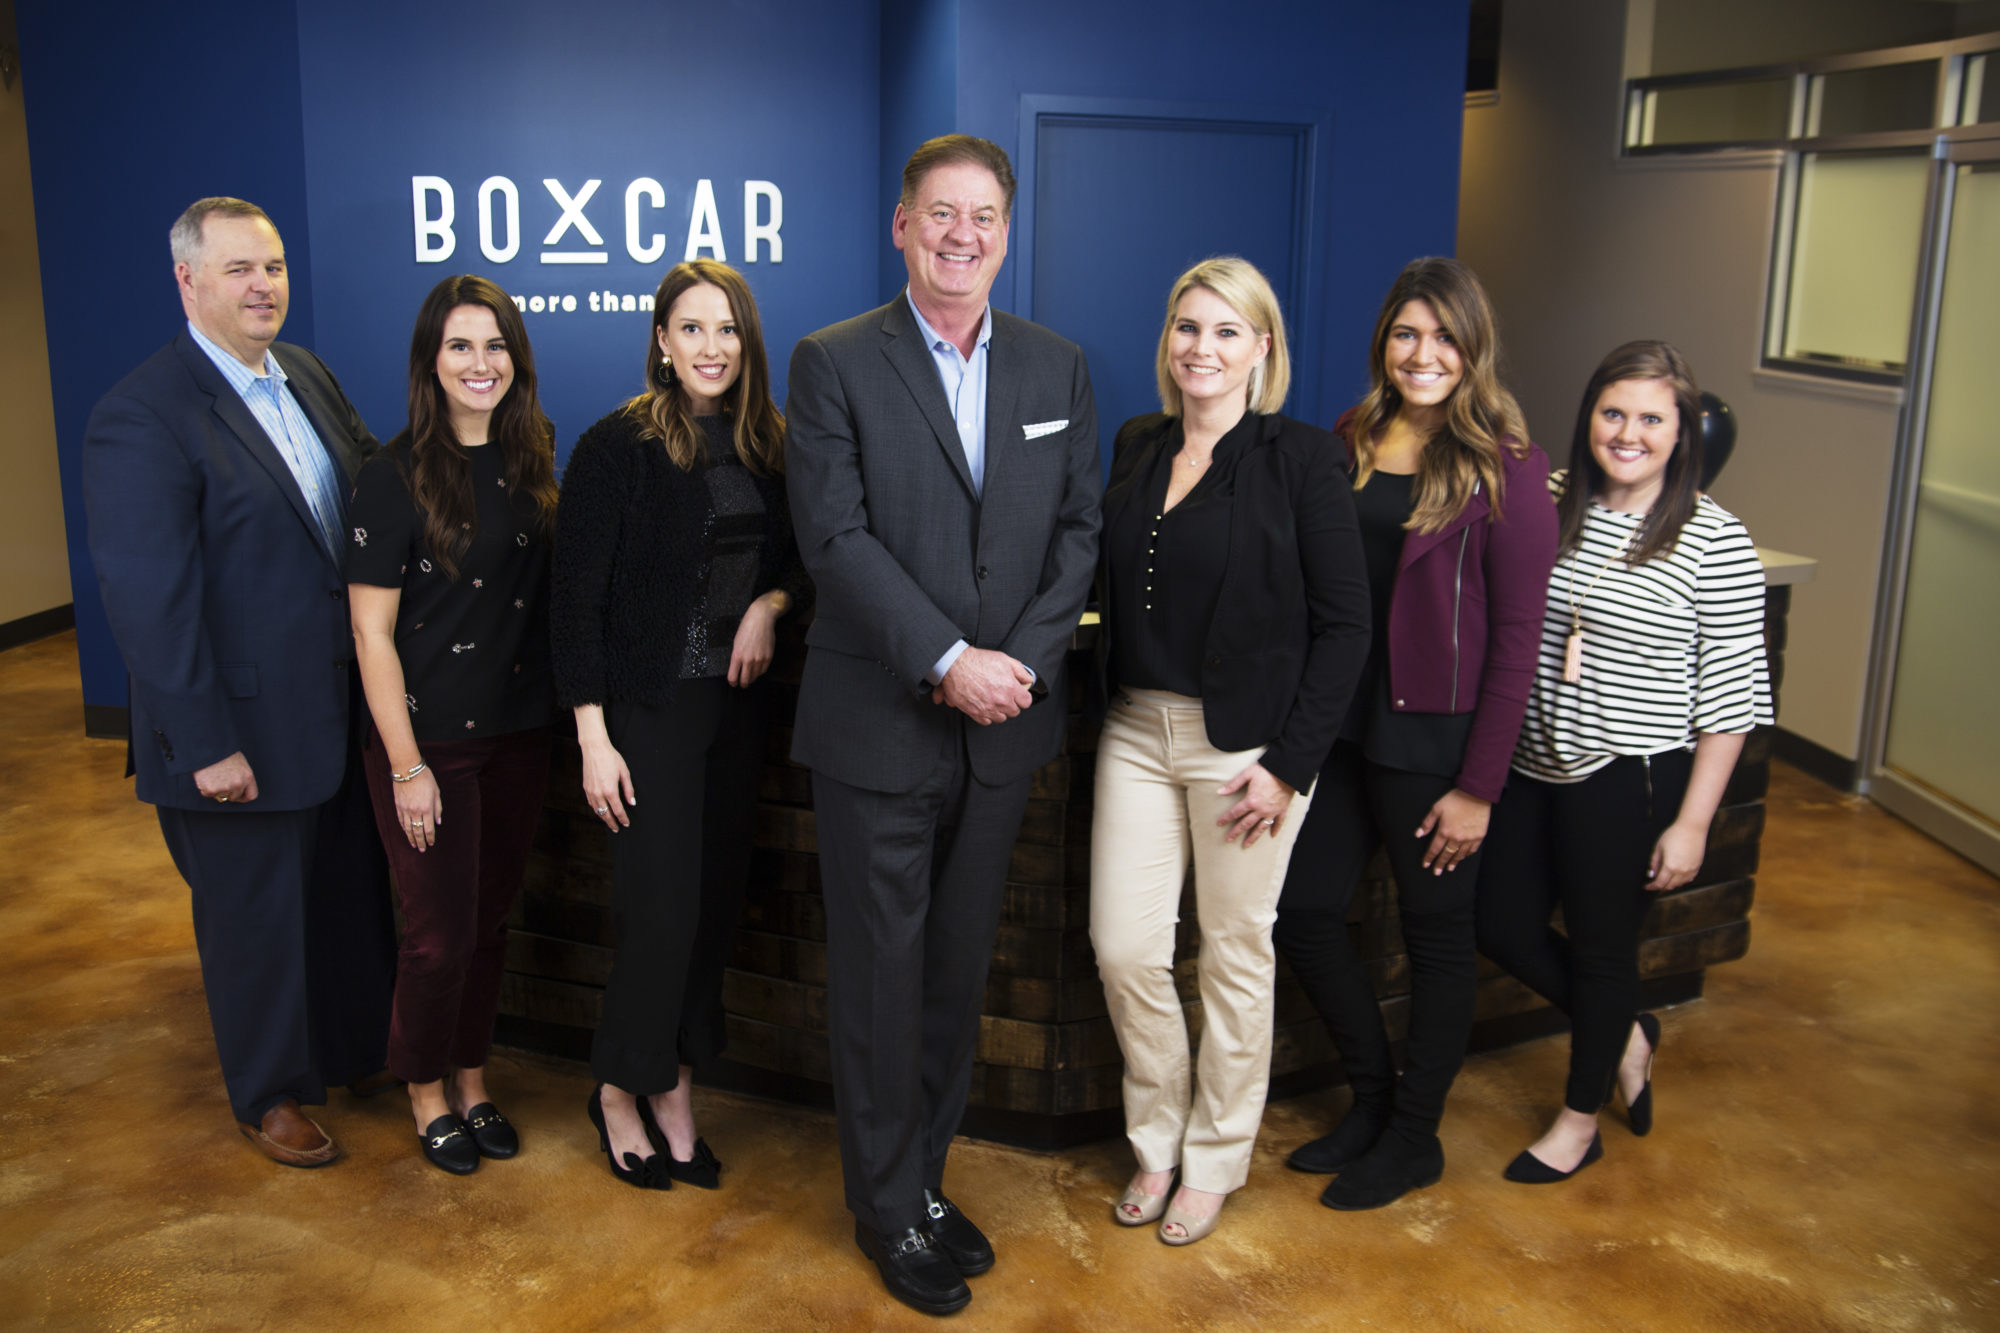 Boxcar group